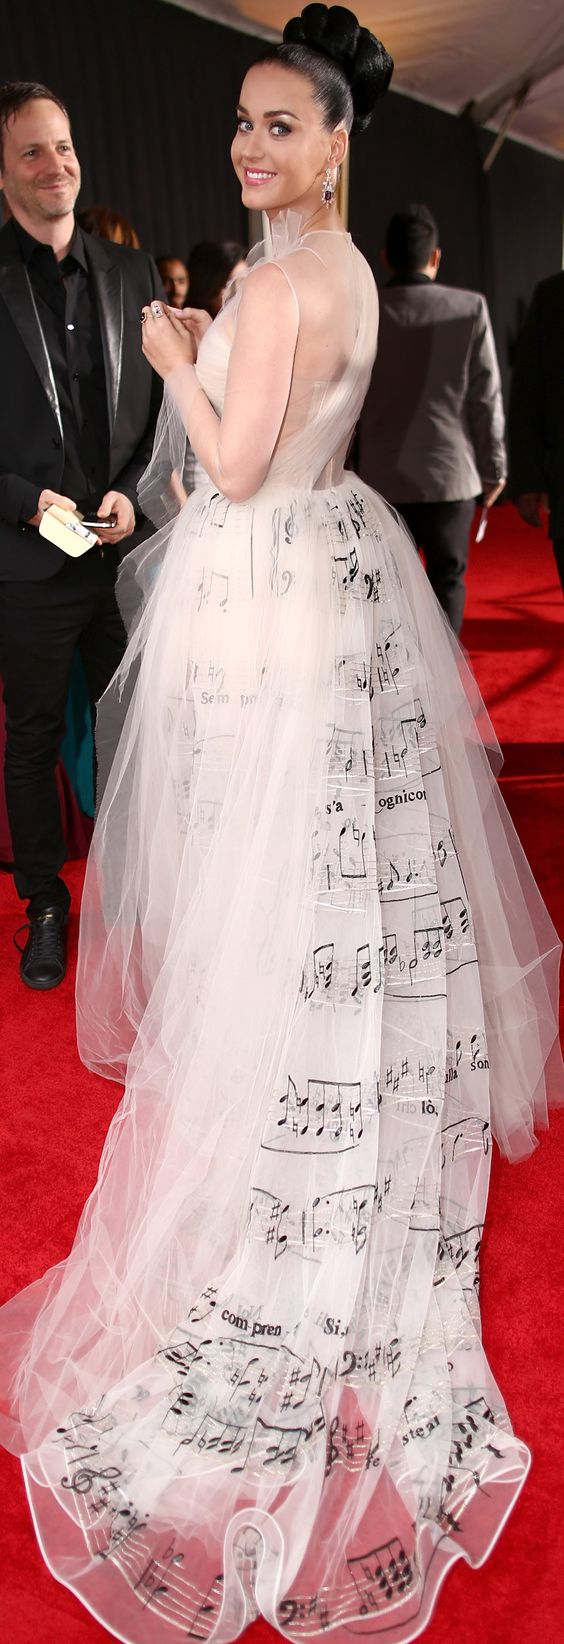 Katy Perry's Grammys dress came straight from the Valentino Couture runway